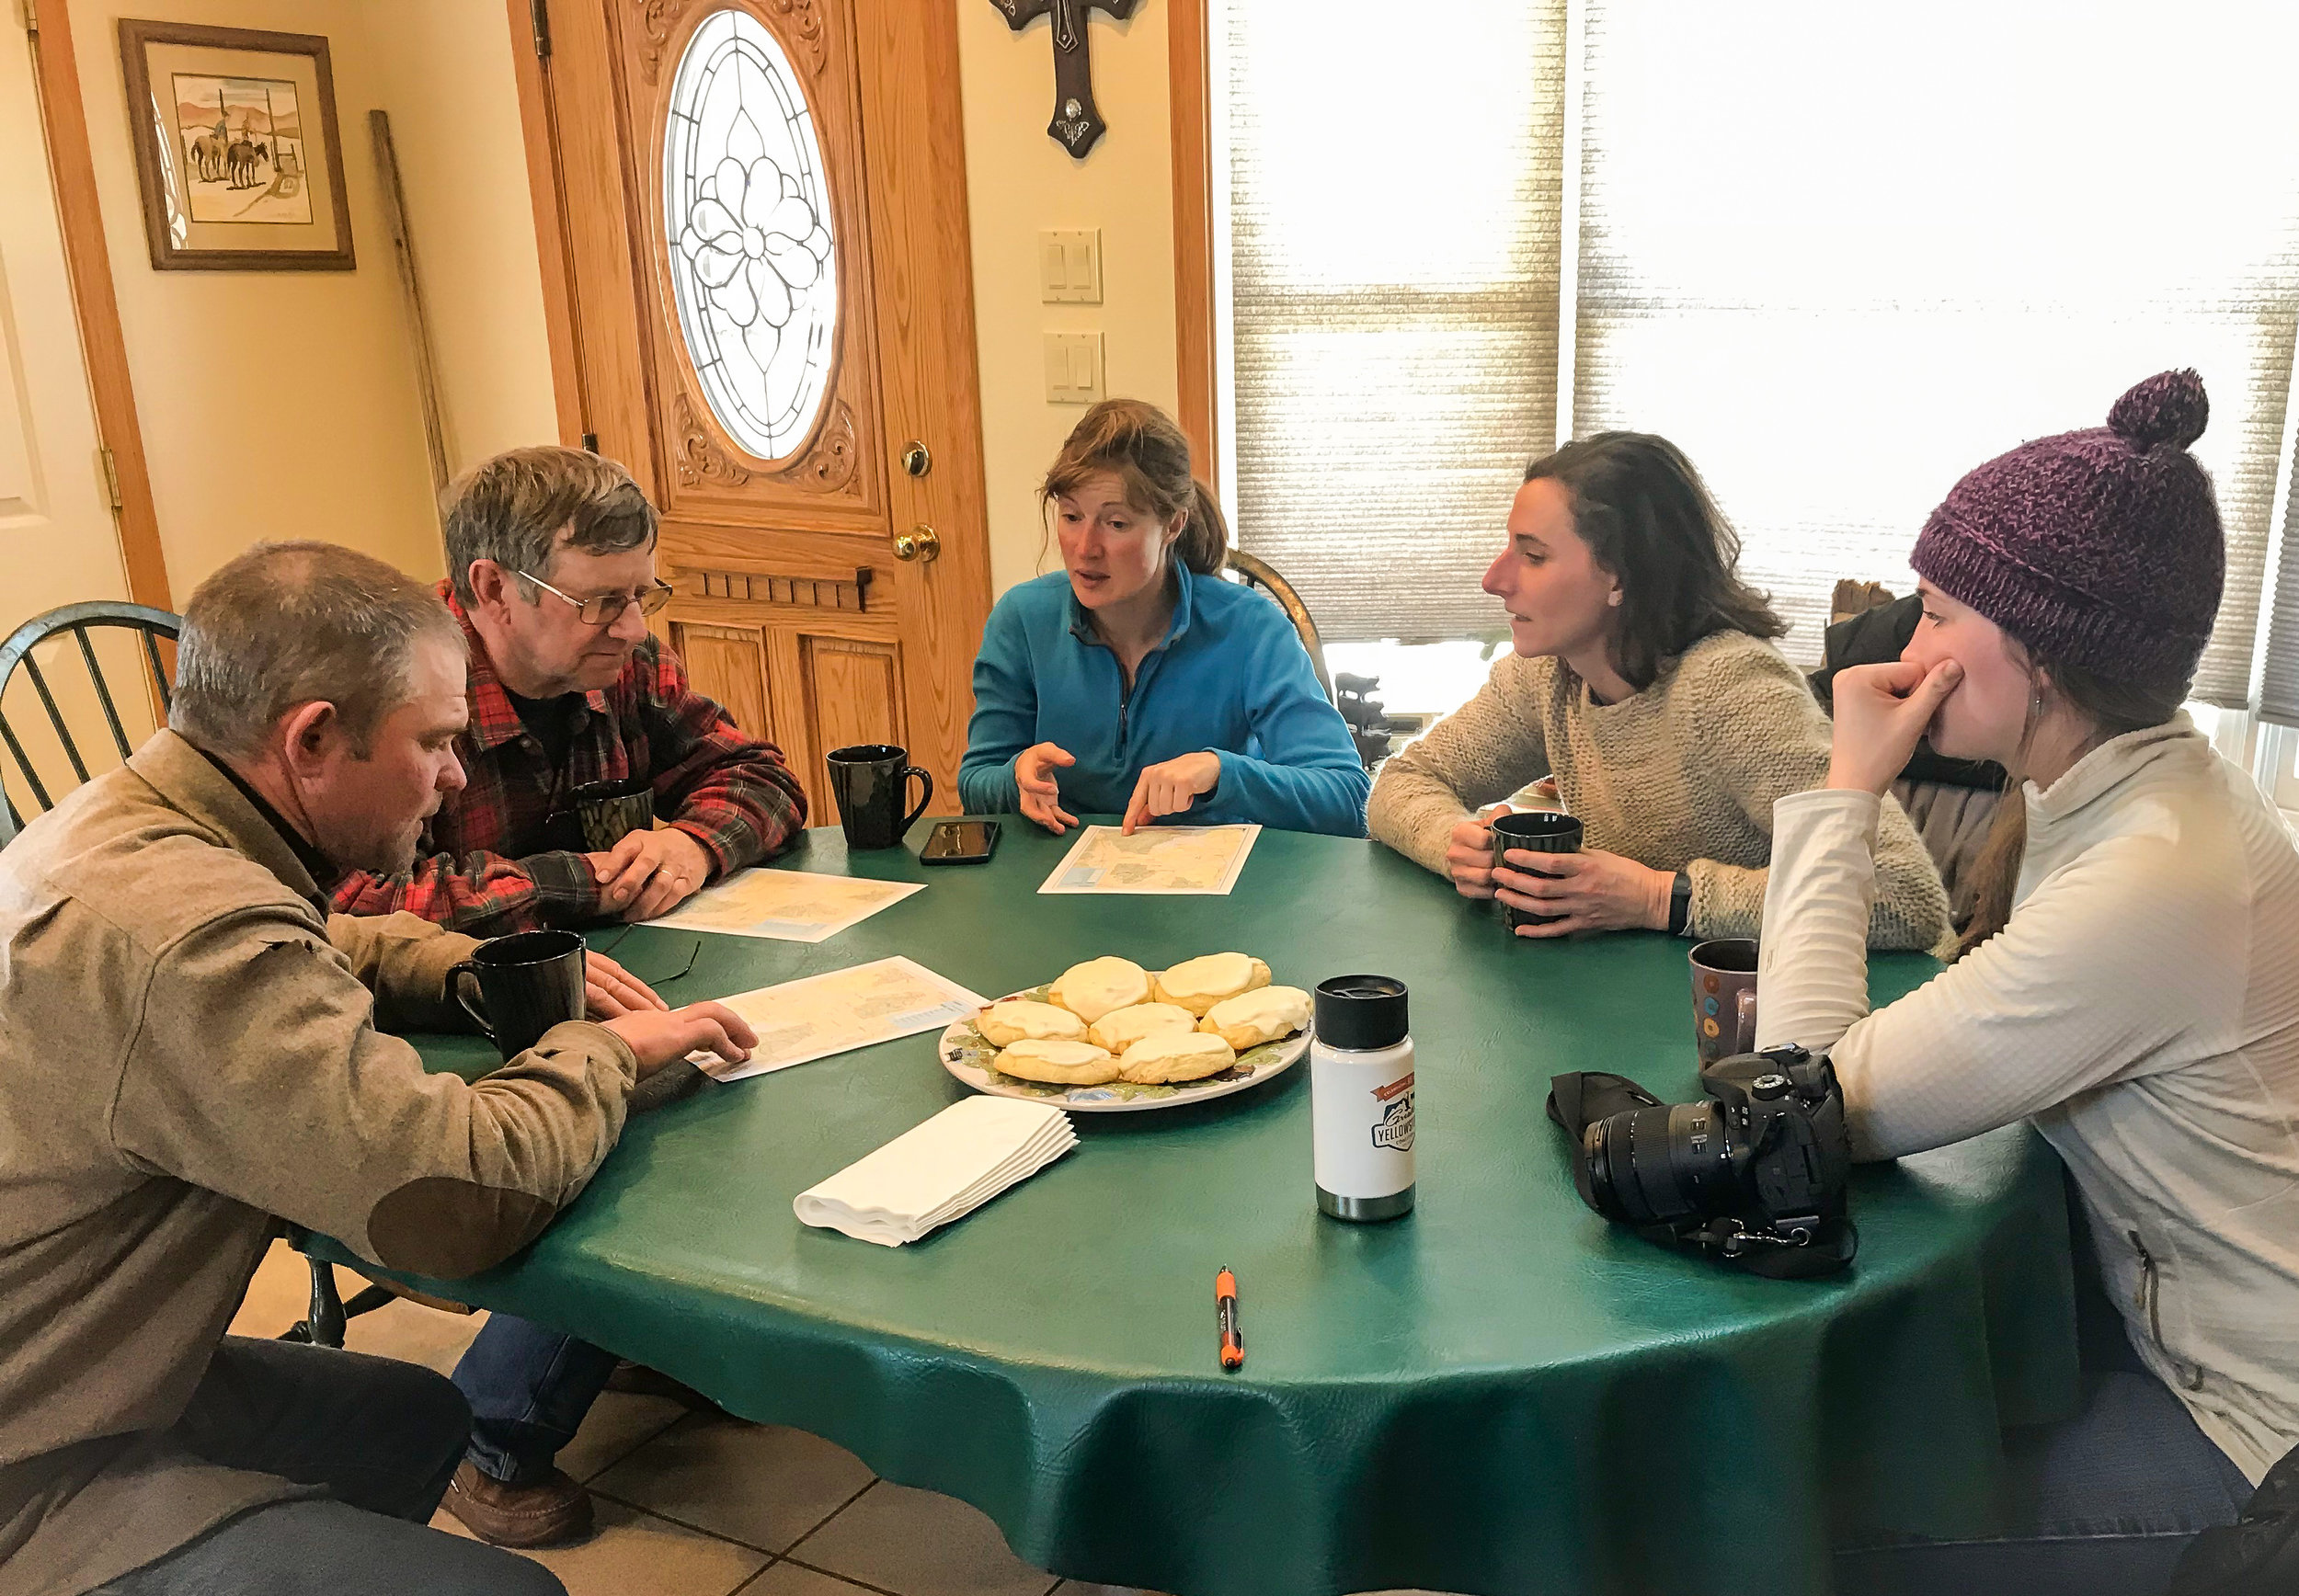 (L to R) Herdsman Andy Peterson, ranch owner John Anderson, herdswoman Amber Mason, GYC's Darcie Warden, and GYC's Brooke Shifrin sit around John's table and locate the cattle grazing allotment on a map.  (Photo GYC/Emmy Reed.)